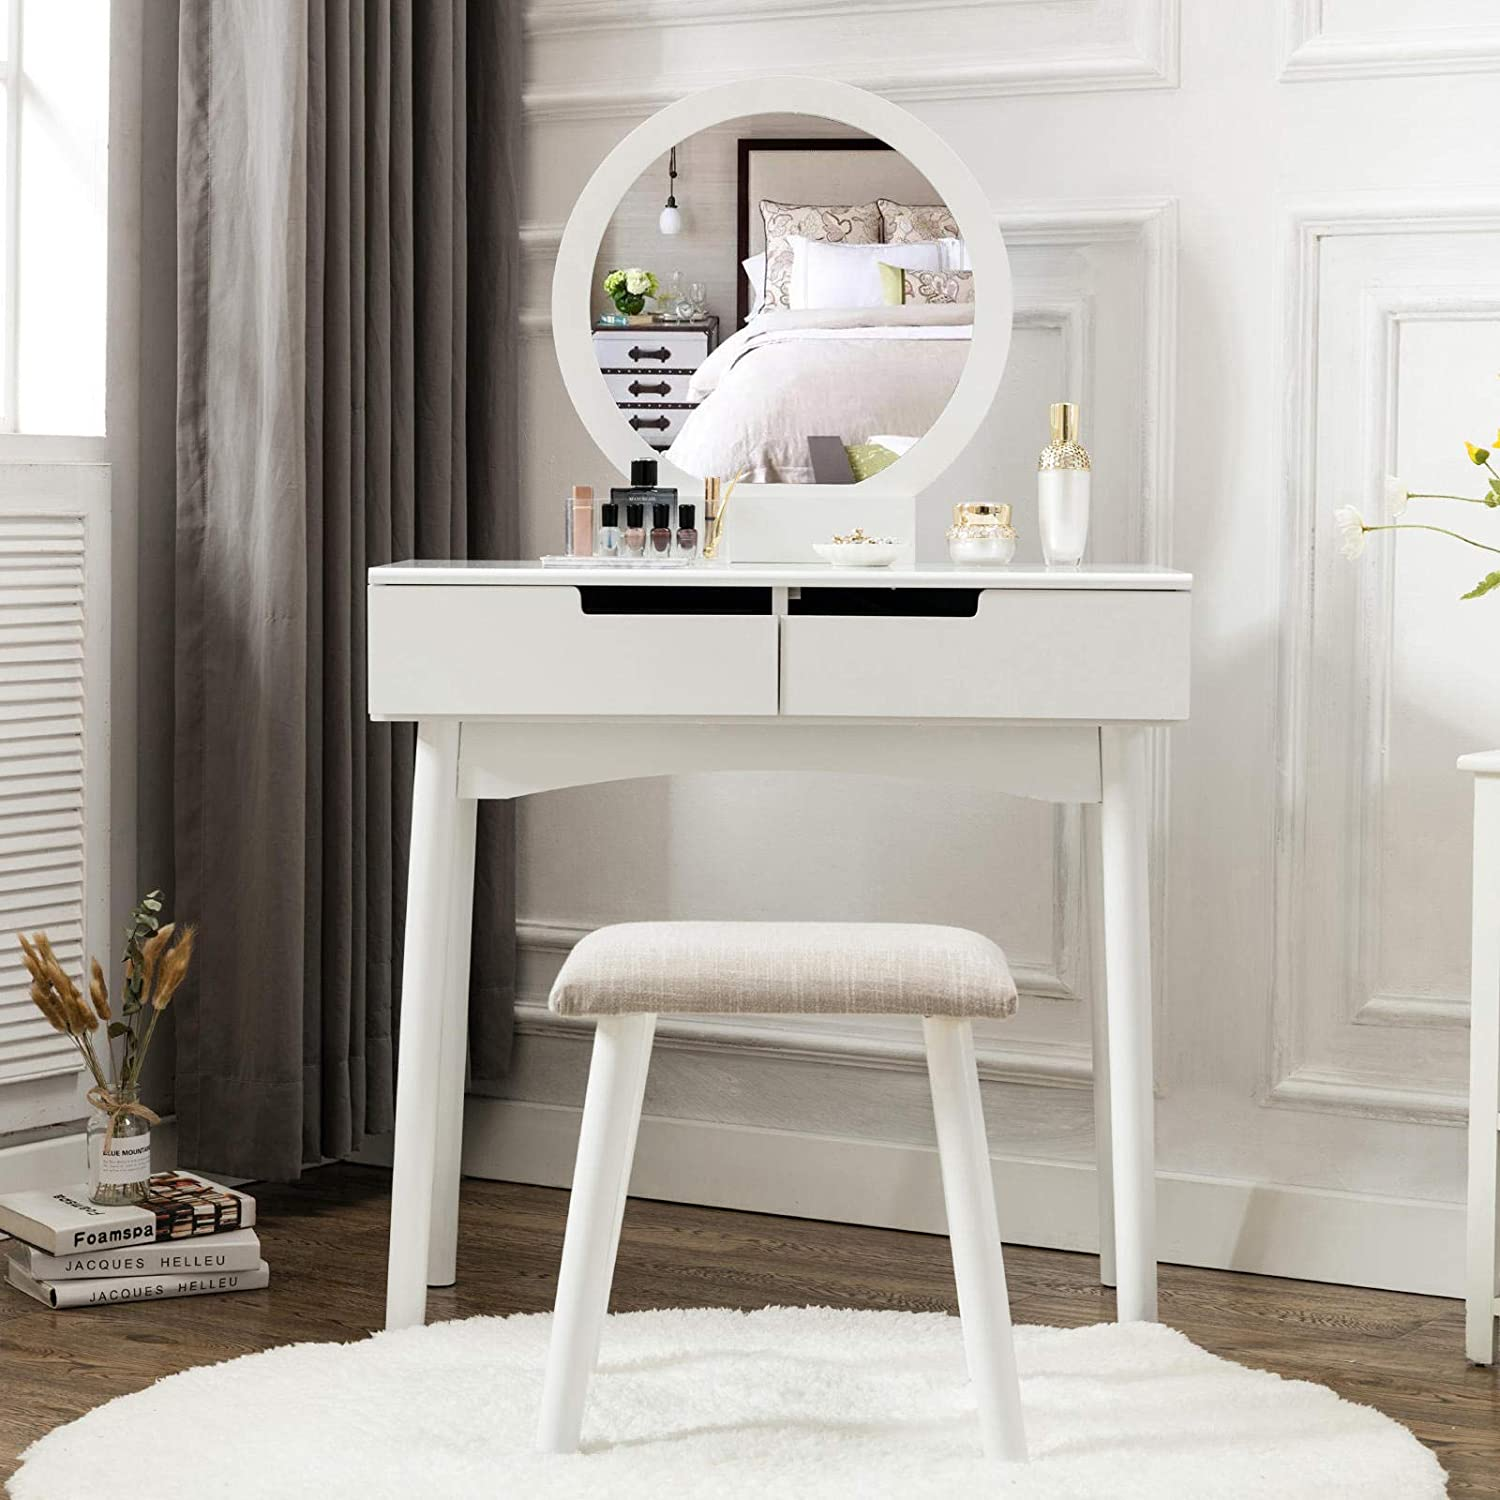 Unihome Vanity Table Set Makeup Table with Round Mirror and Stool Small Dressing Tables with Drawers Makeup Vanity Table White-25, 2Drawers